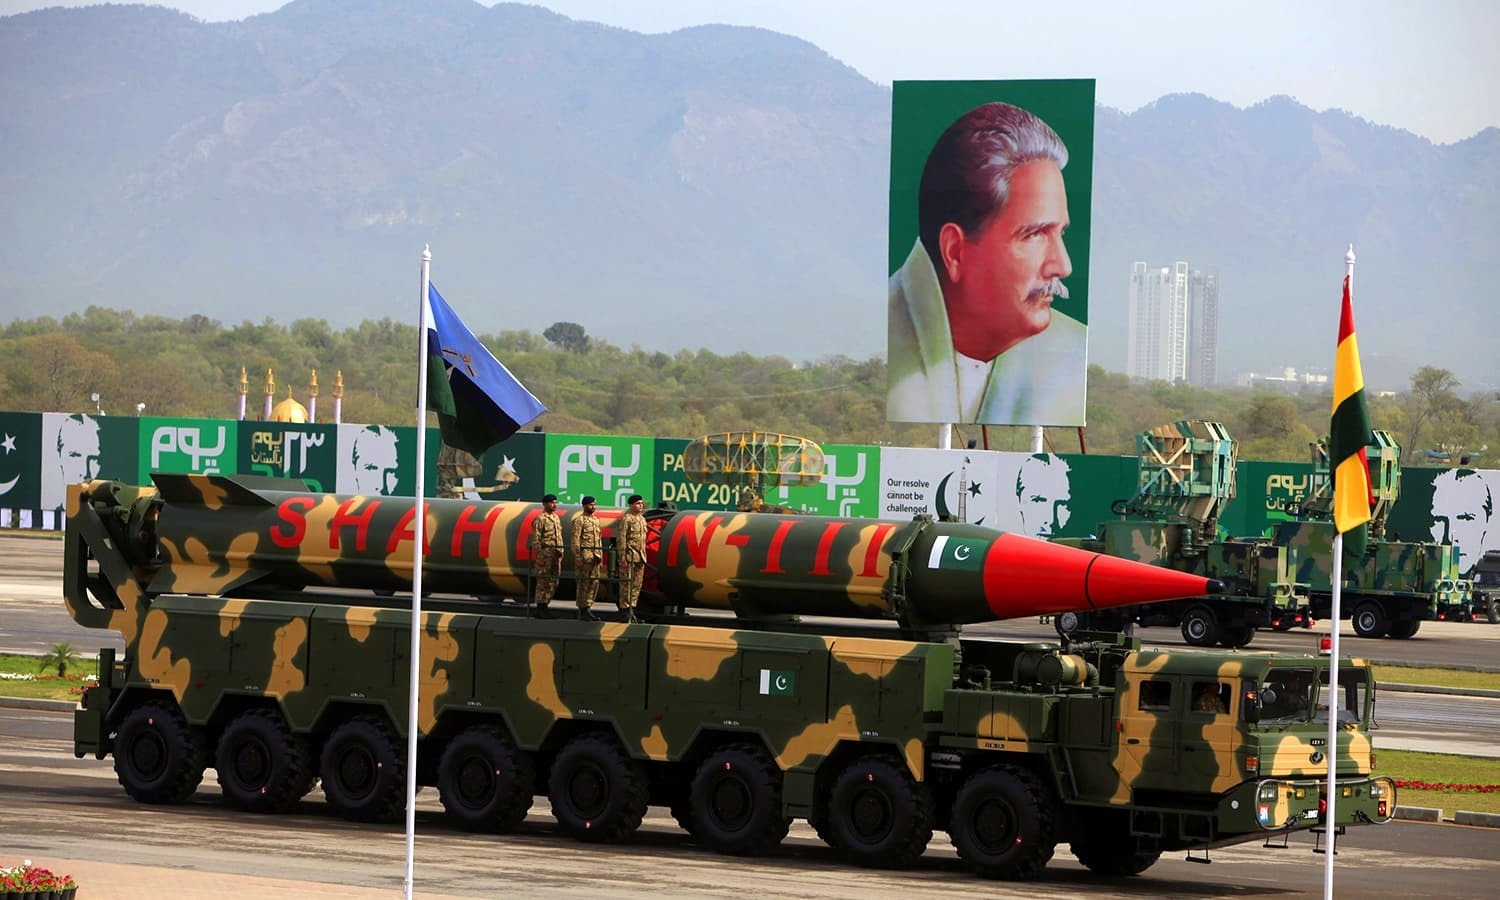 The Shaheen-III missile is displayed during the Pakistan Day parade in Islamabad, Pakistan, Mar 23, 2016. — Reuters/File